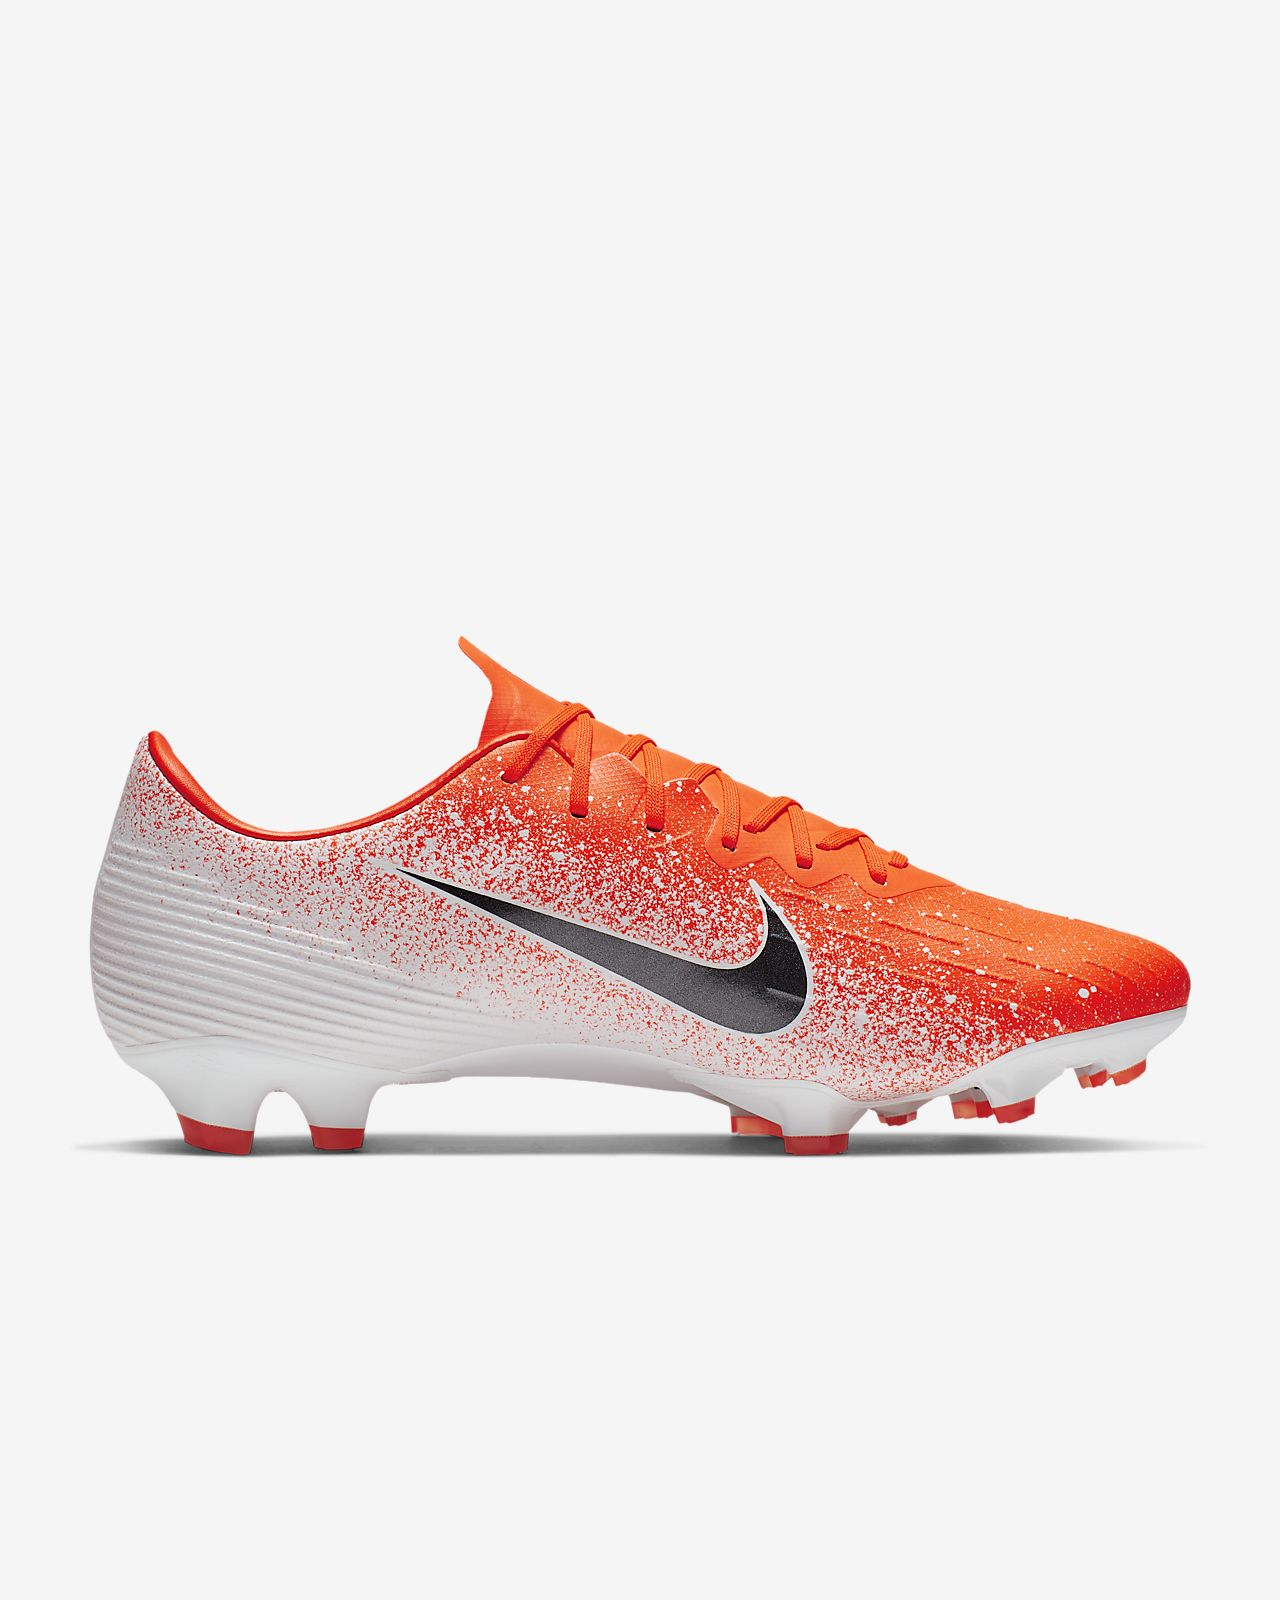 b6bbd2077 Nike Vapor 12 Pro FG Firm-Ground Soccer Cleat . Nike.com